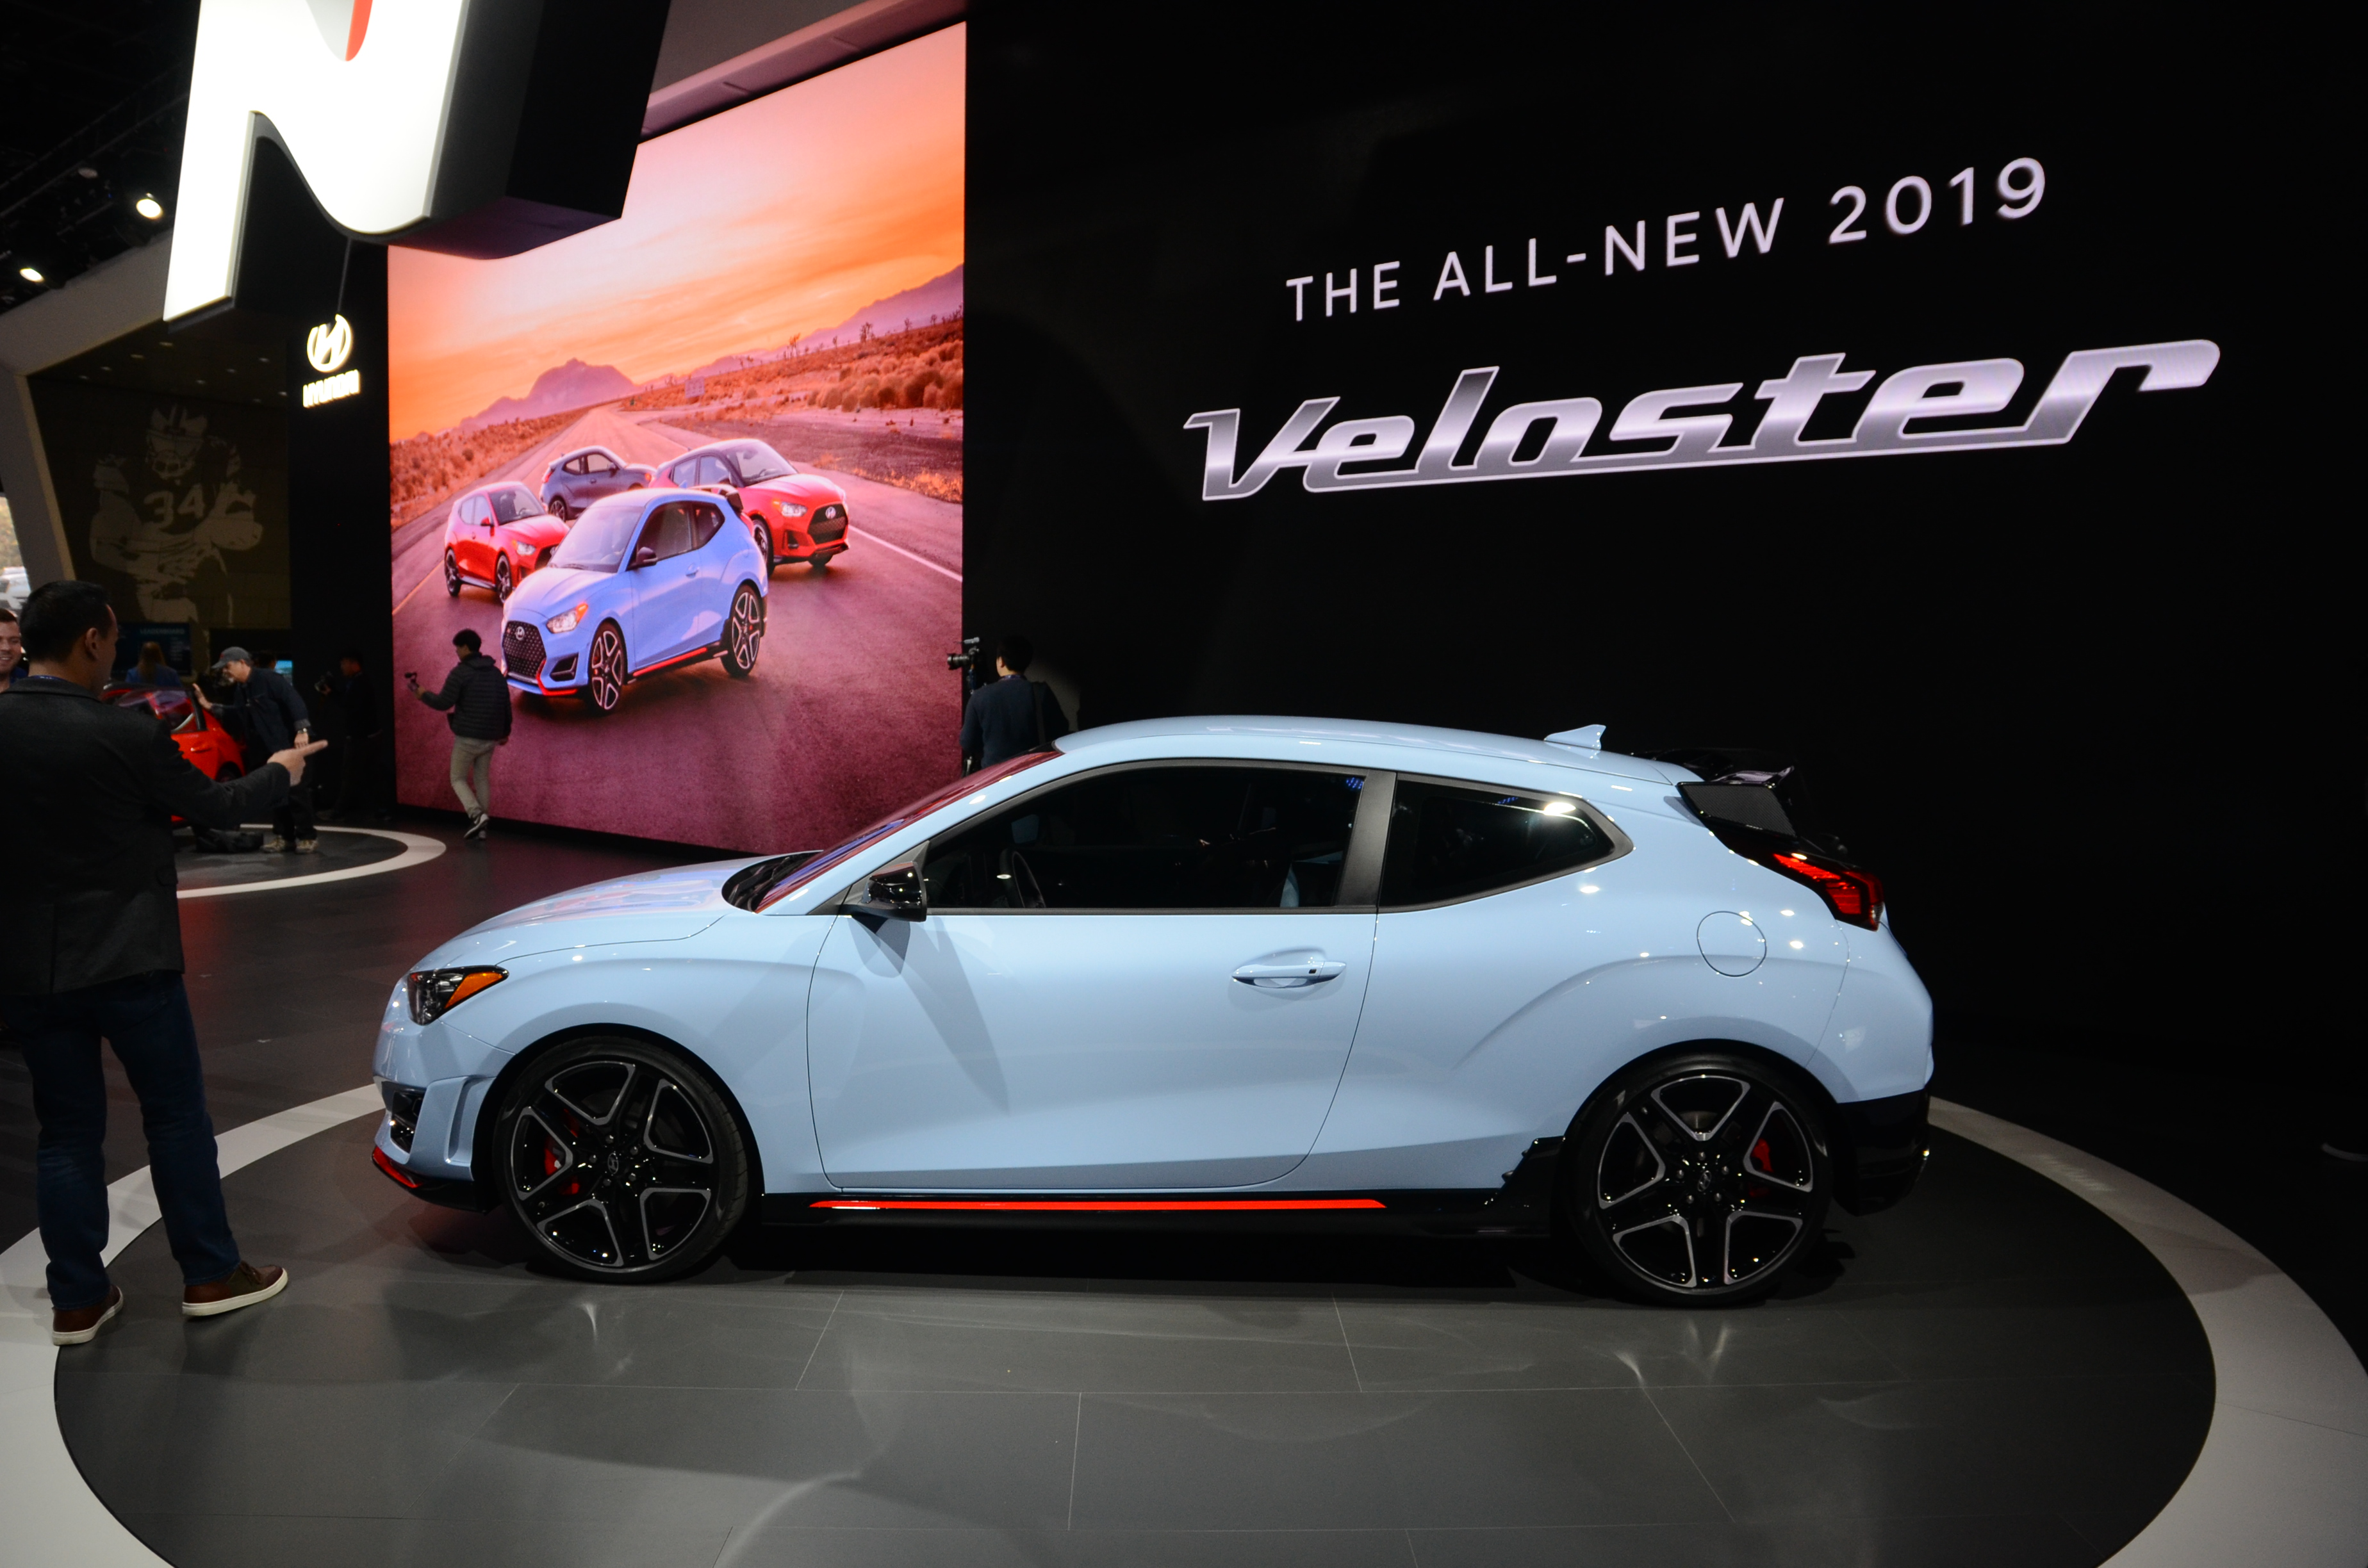 drive motorsport new n veloster hyundai in forza news the